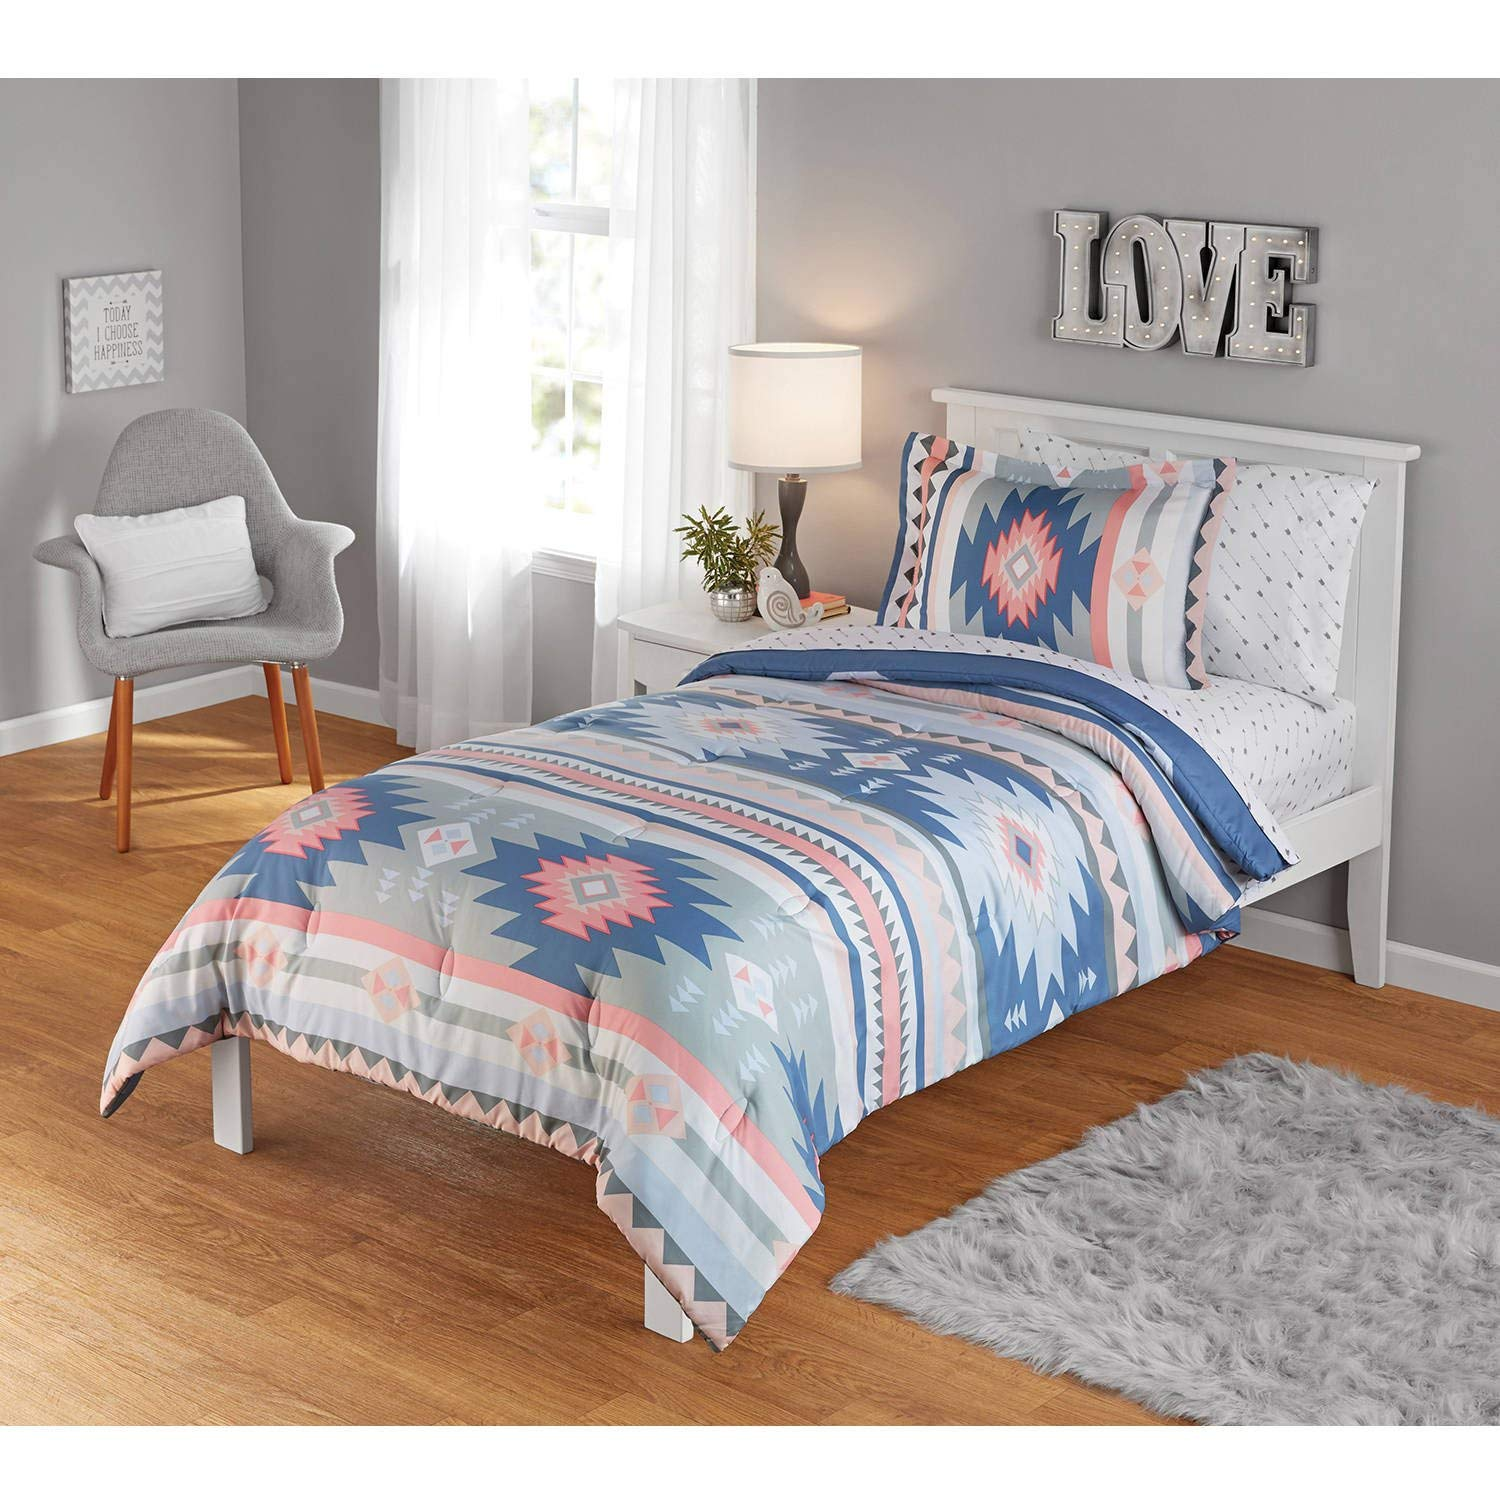 N2 3 Piece Ivory Blue Coral Pink Aztec Comforter Full Queen Set, Bohemian Bedding Indie Southwest Tribal Native American Pattern Motifs Grey Stripes Indian Western Gray, Polyester